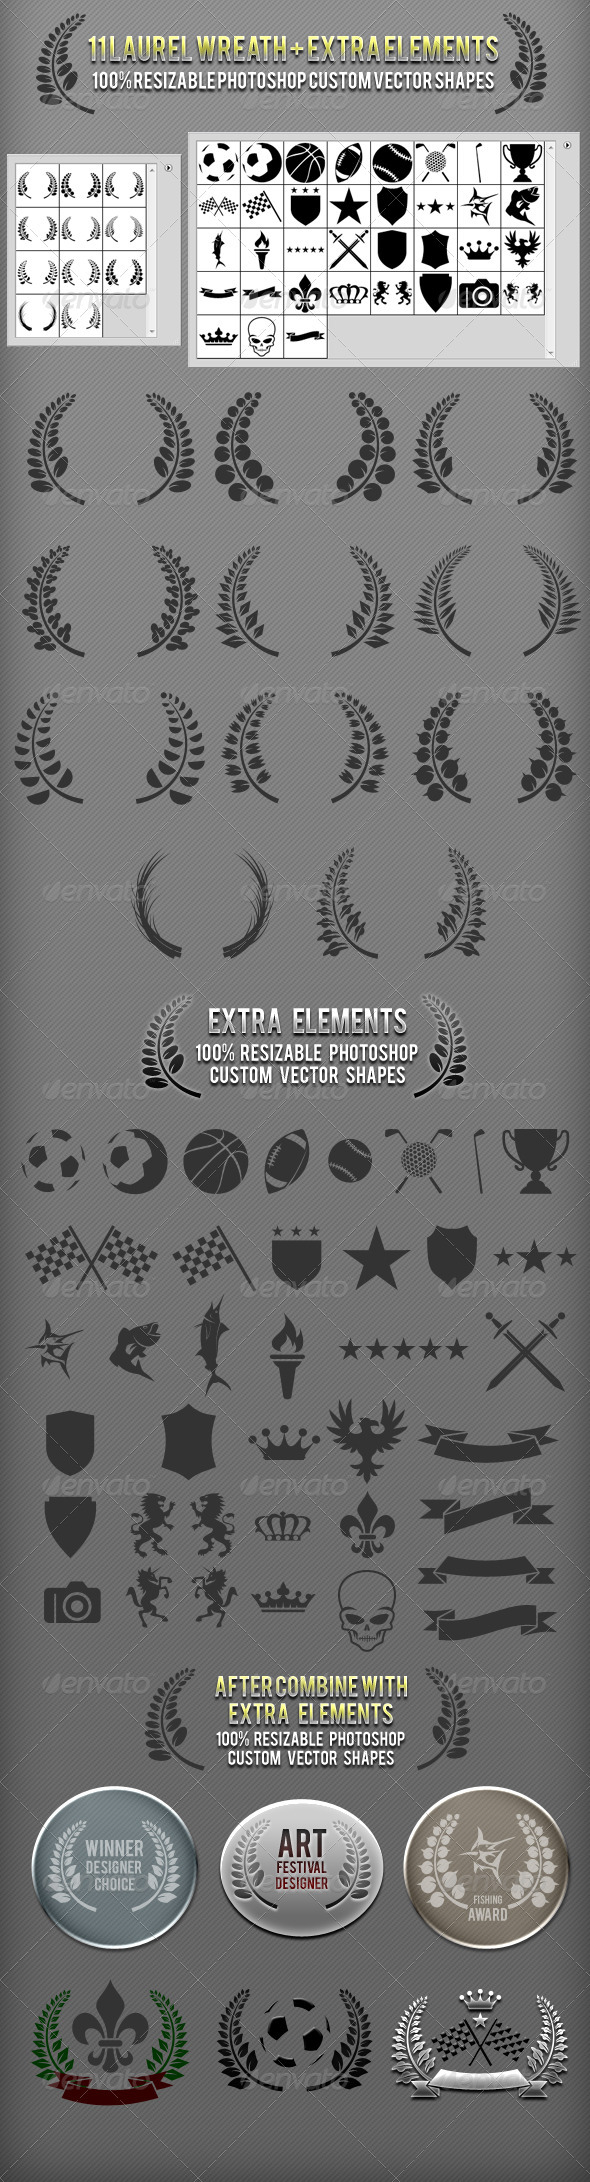 GraphicRiver Laurel Wreath Photoshop Custom Shapes 3001694